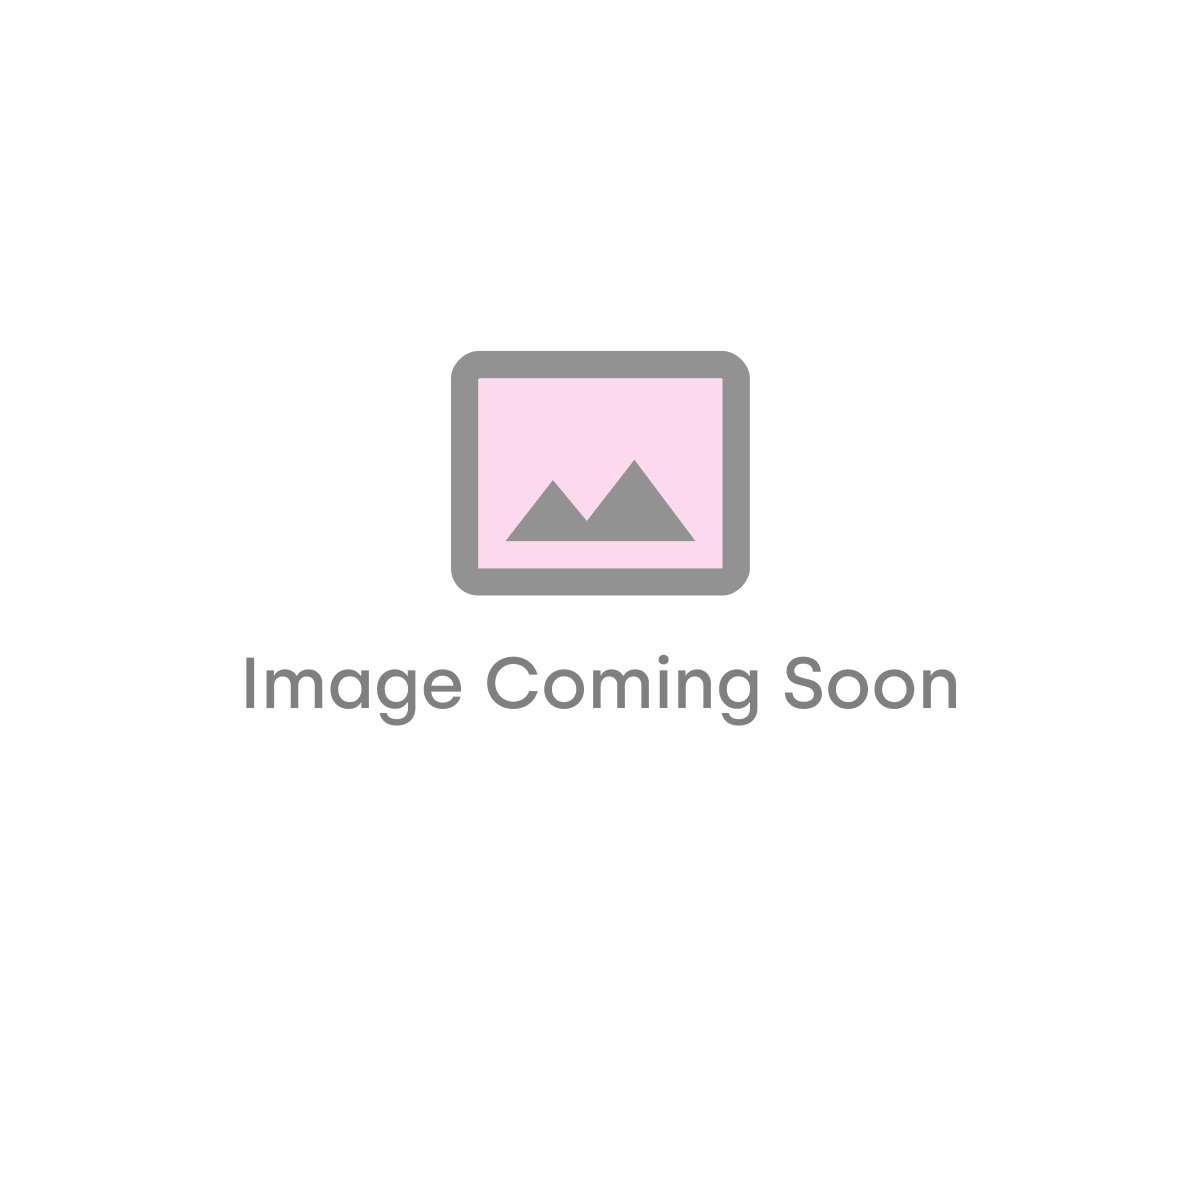 Reina Neva Vertical 1800 x 295mm Single Panel Designer Radiator - White (12370)